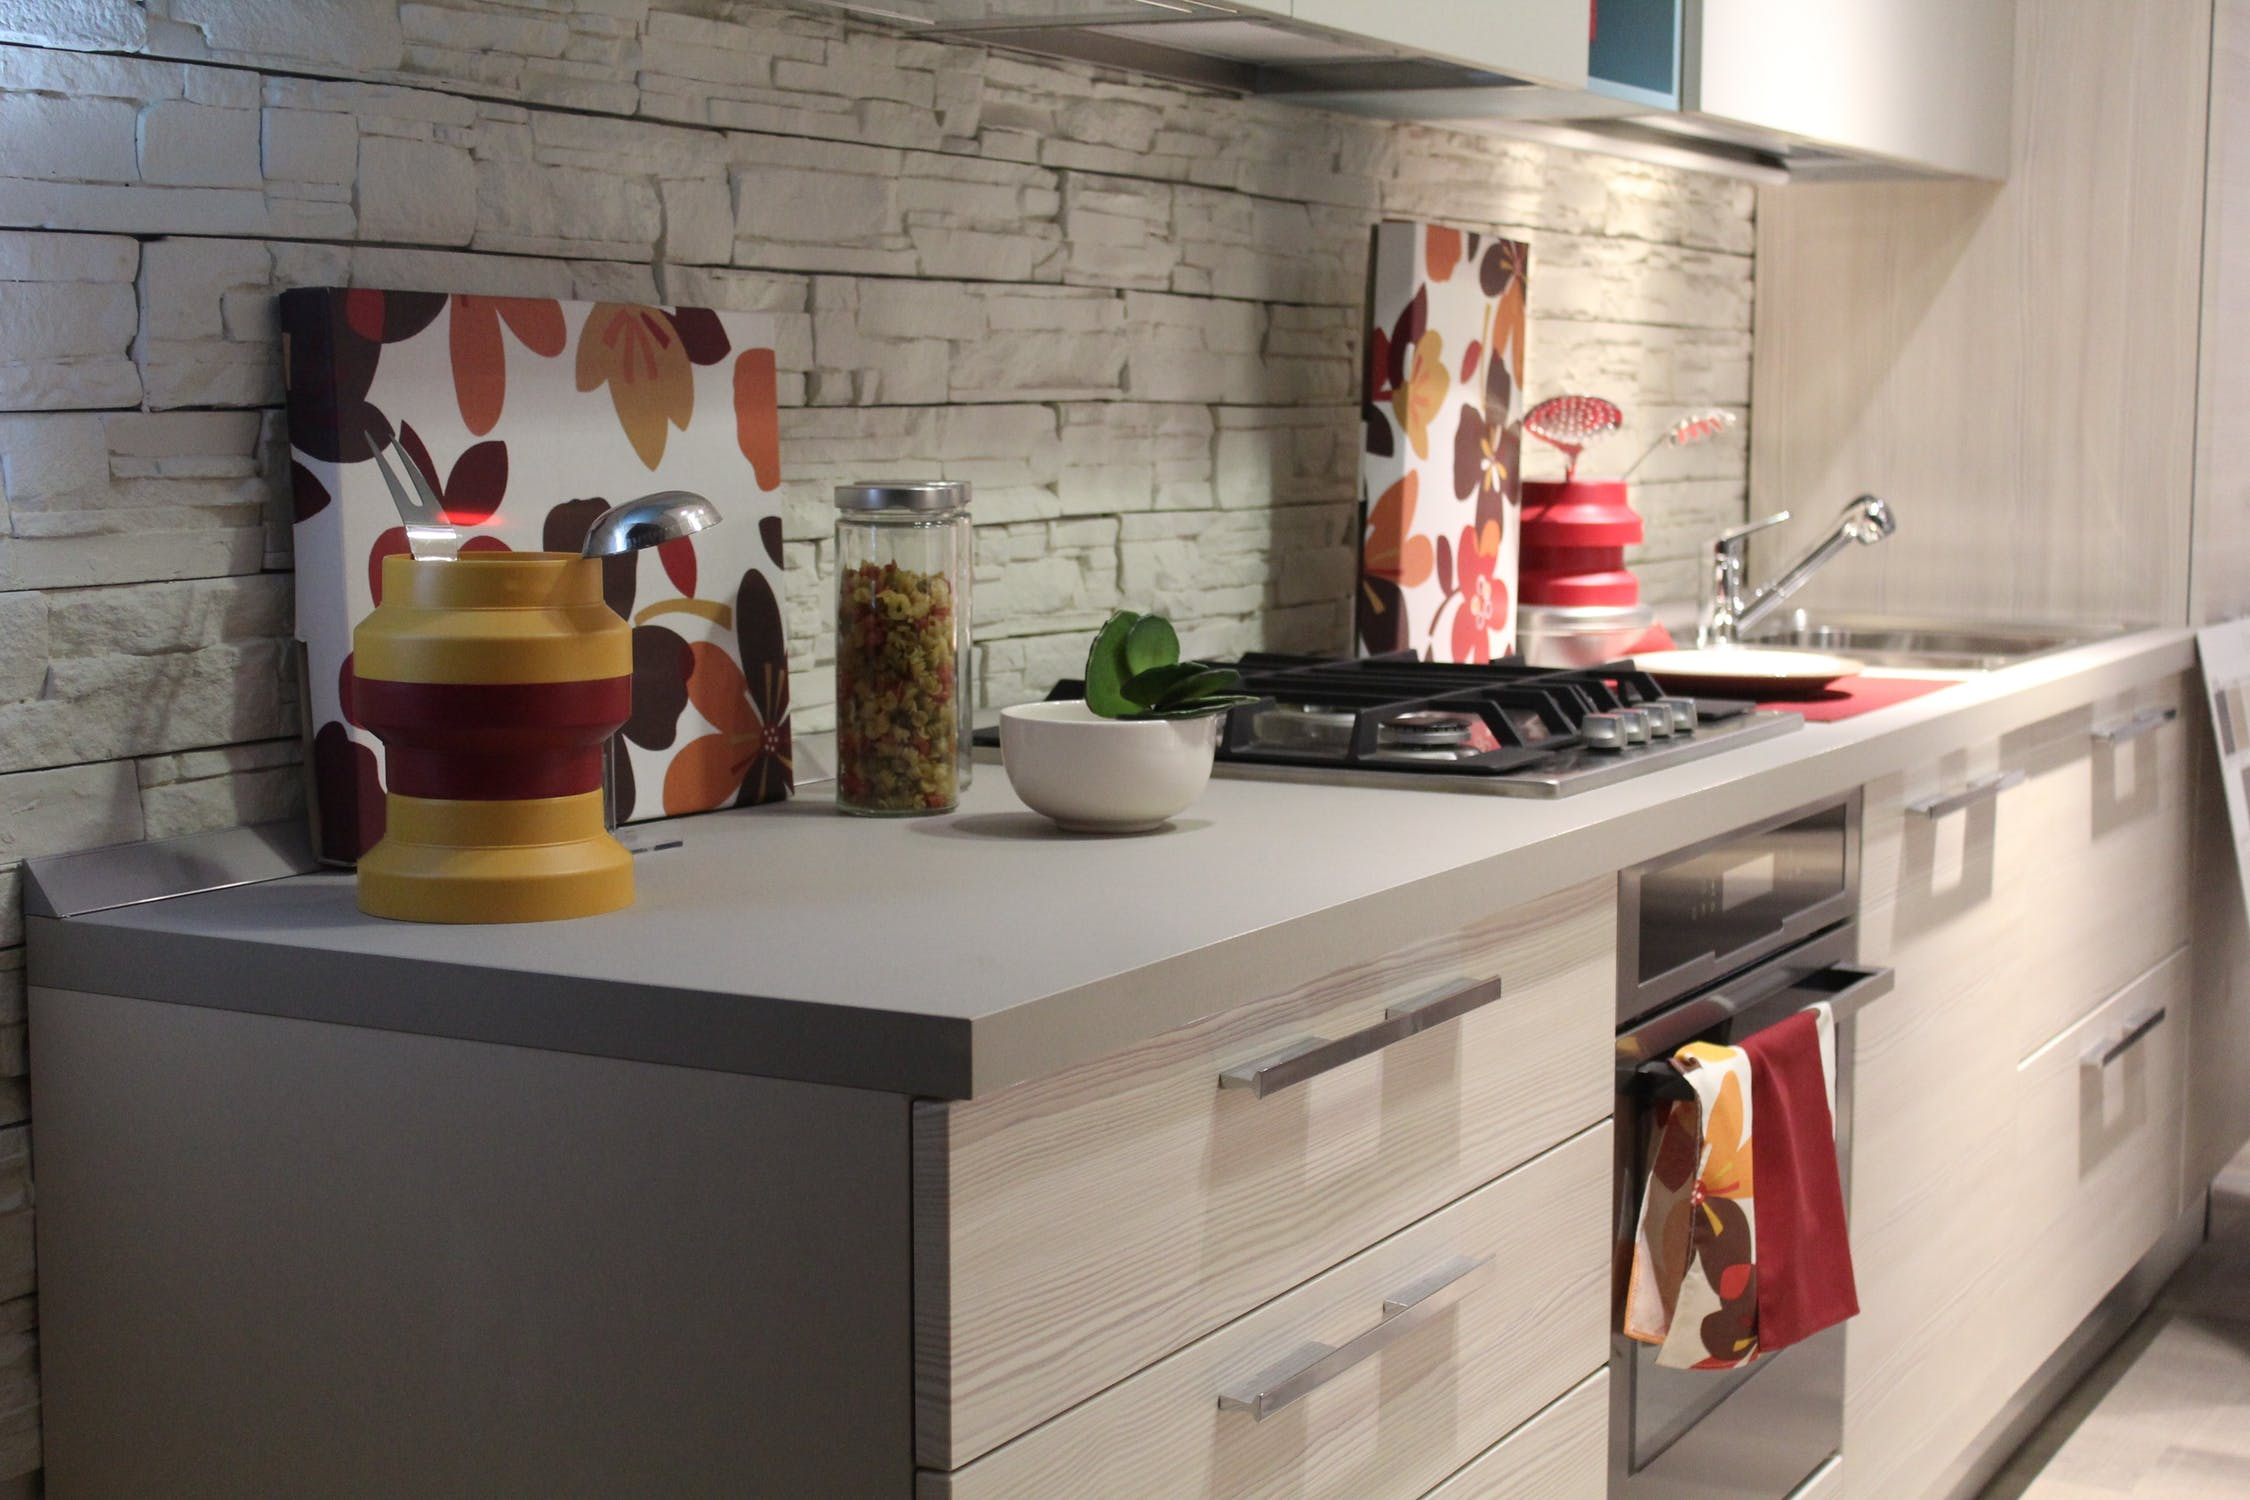 Top ways to customize your kitchen